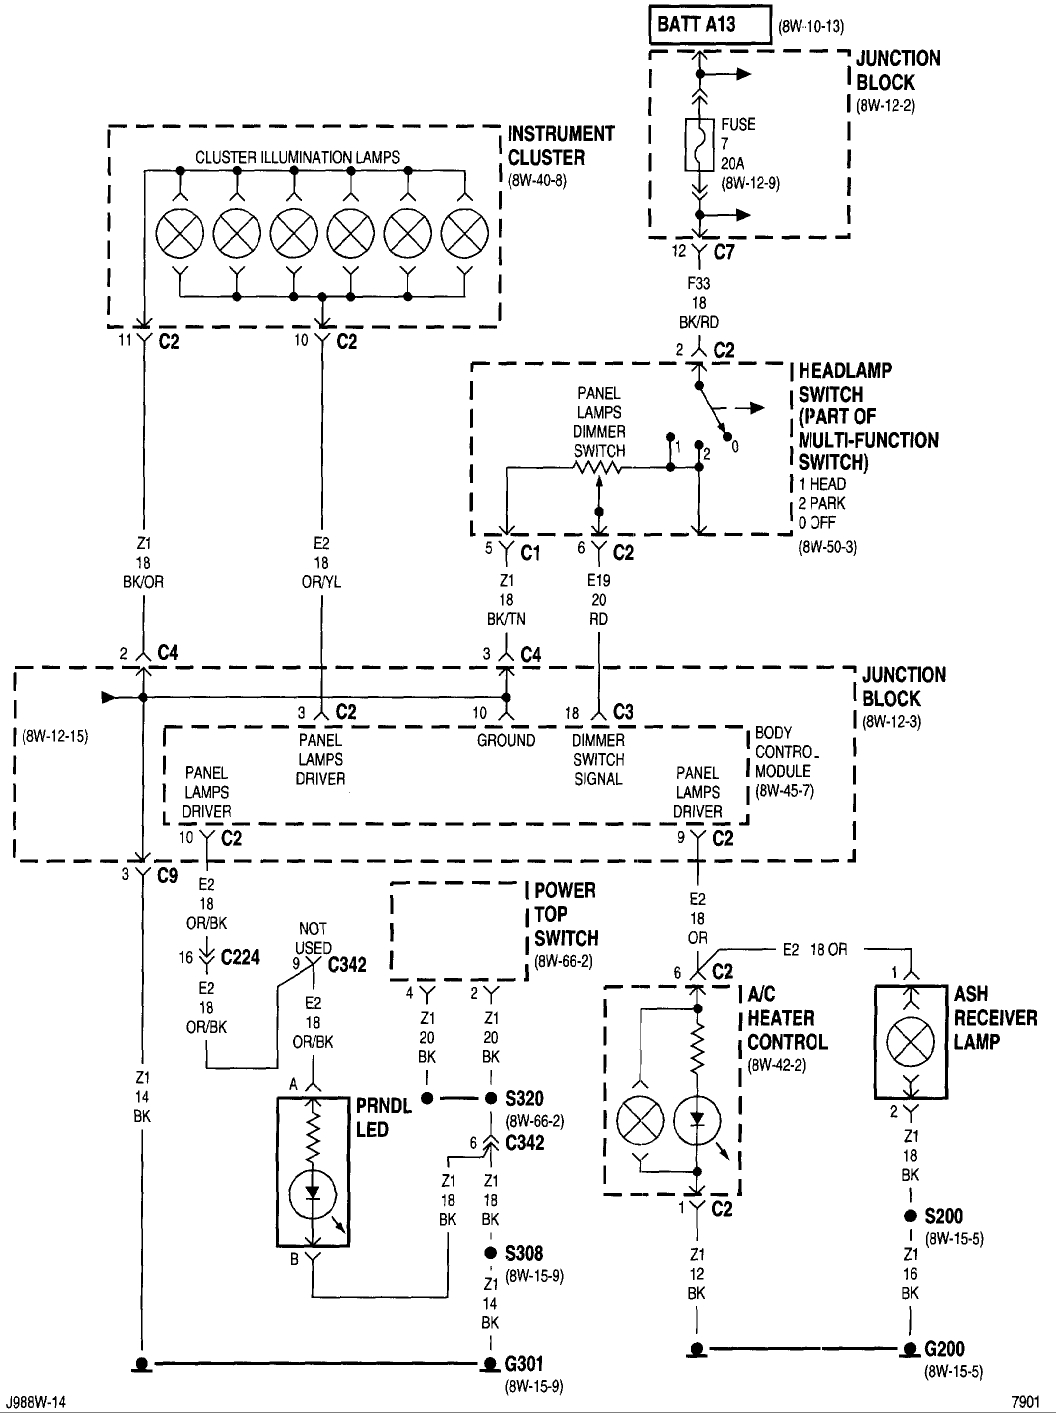 hight resolution of 2007 chrysler sebring wiring diagram 2007 chrysler sebring wiring diagram 2007 pt cruiser fuse box